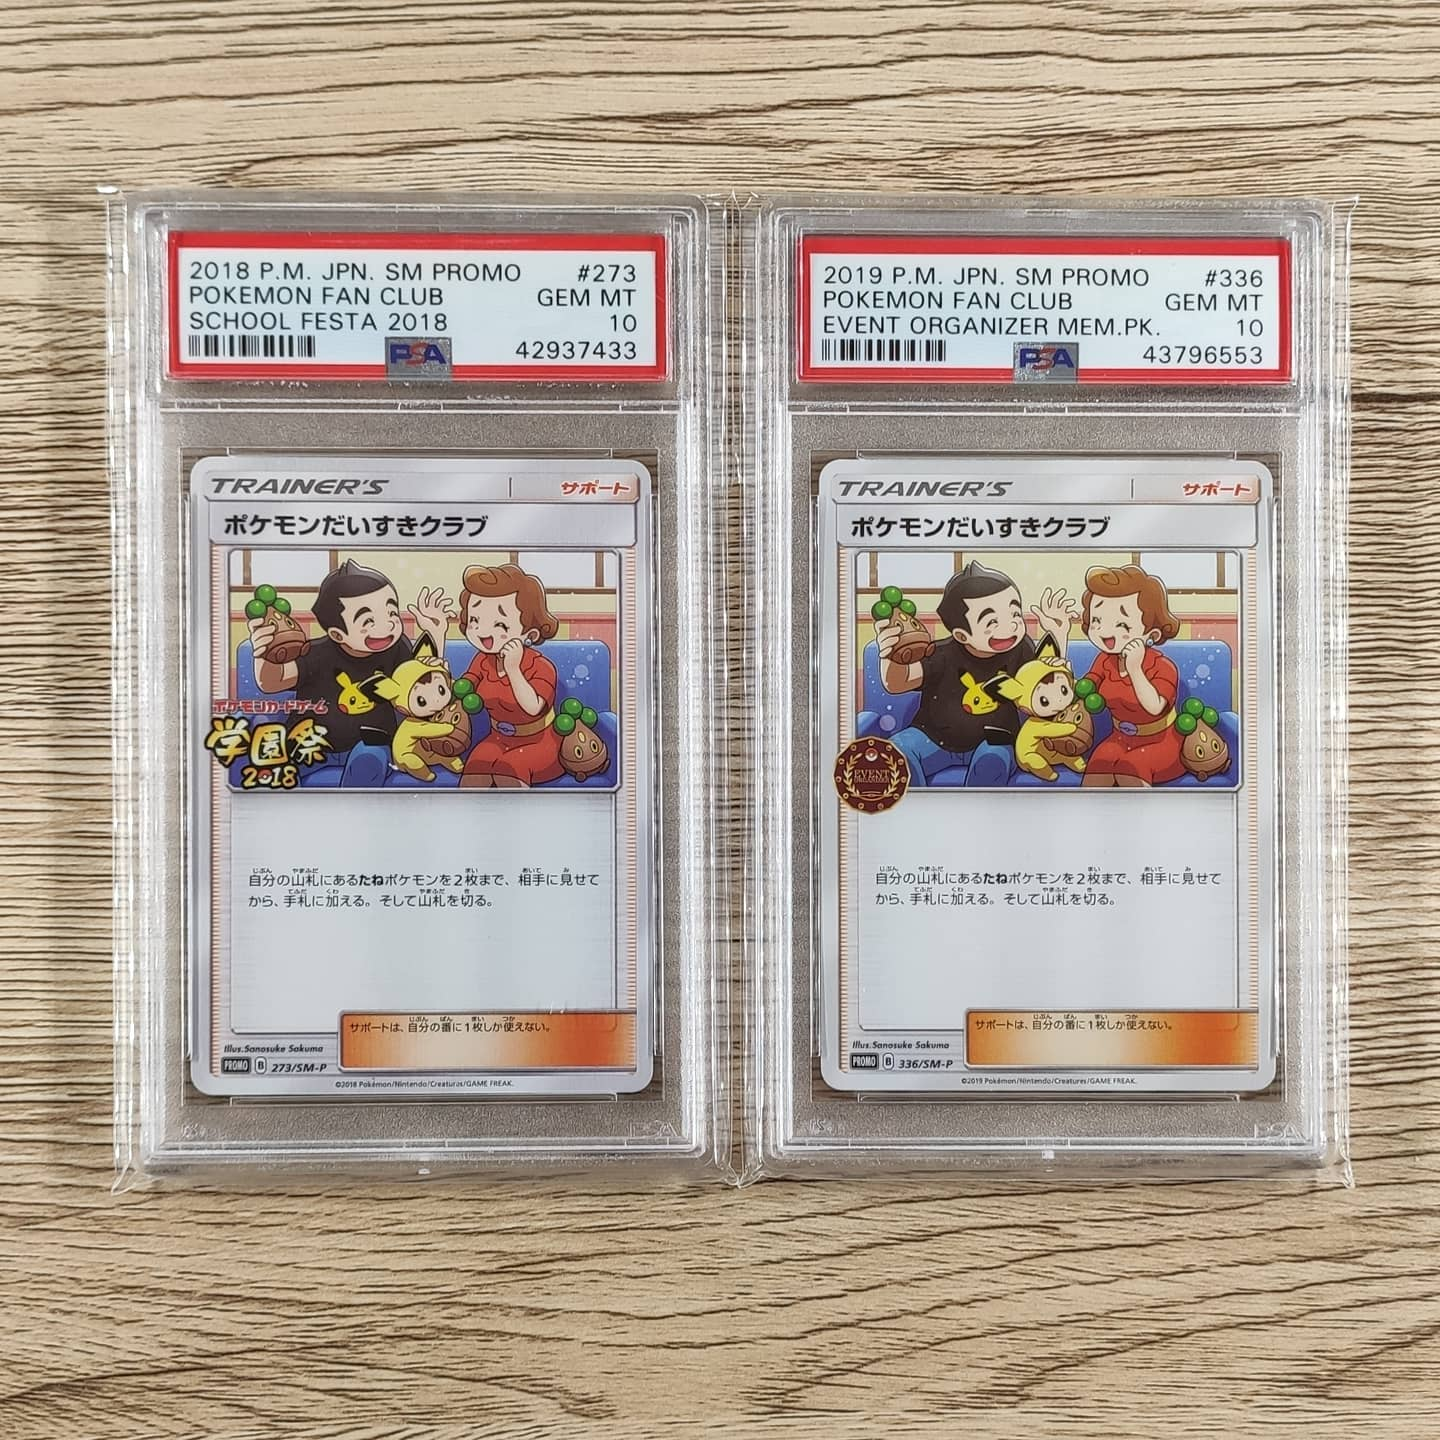 My PSA 10 SM-P promo Pokémon Fan Club cards (picture from my Instagram feed).